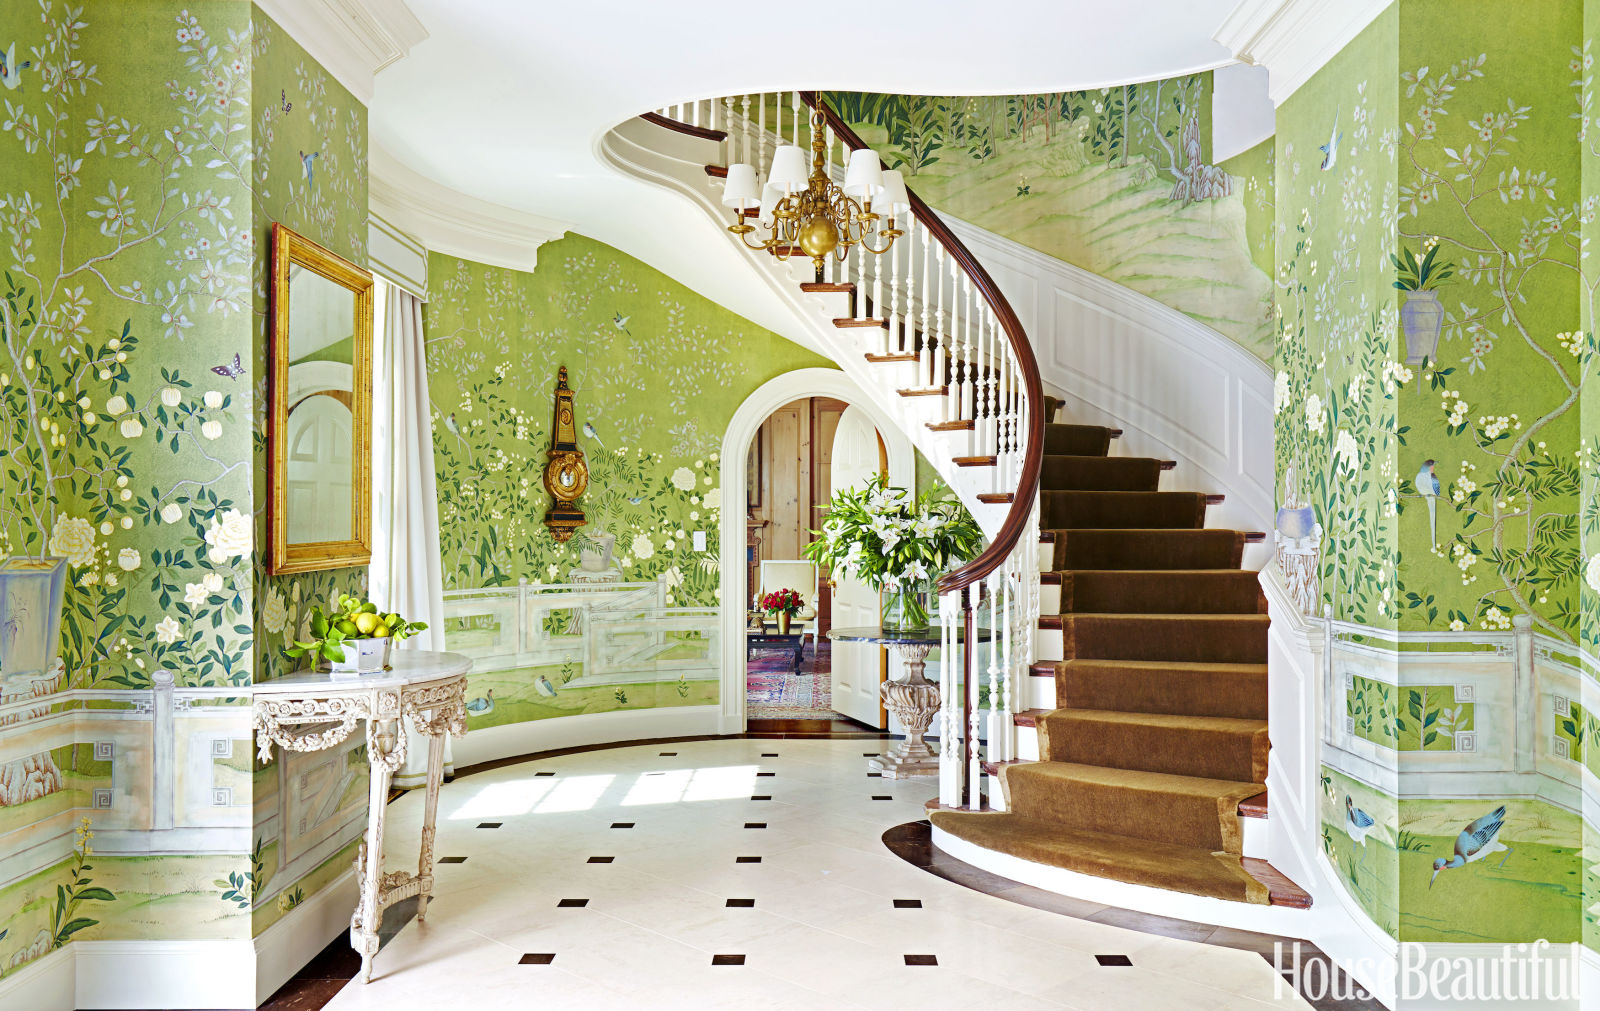 Beautiful Wall Designs For Homes: How To Get The Look: Glamorously Decorated Home Entrances